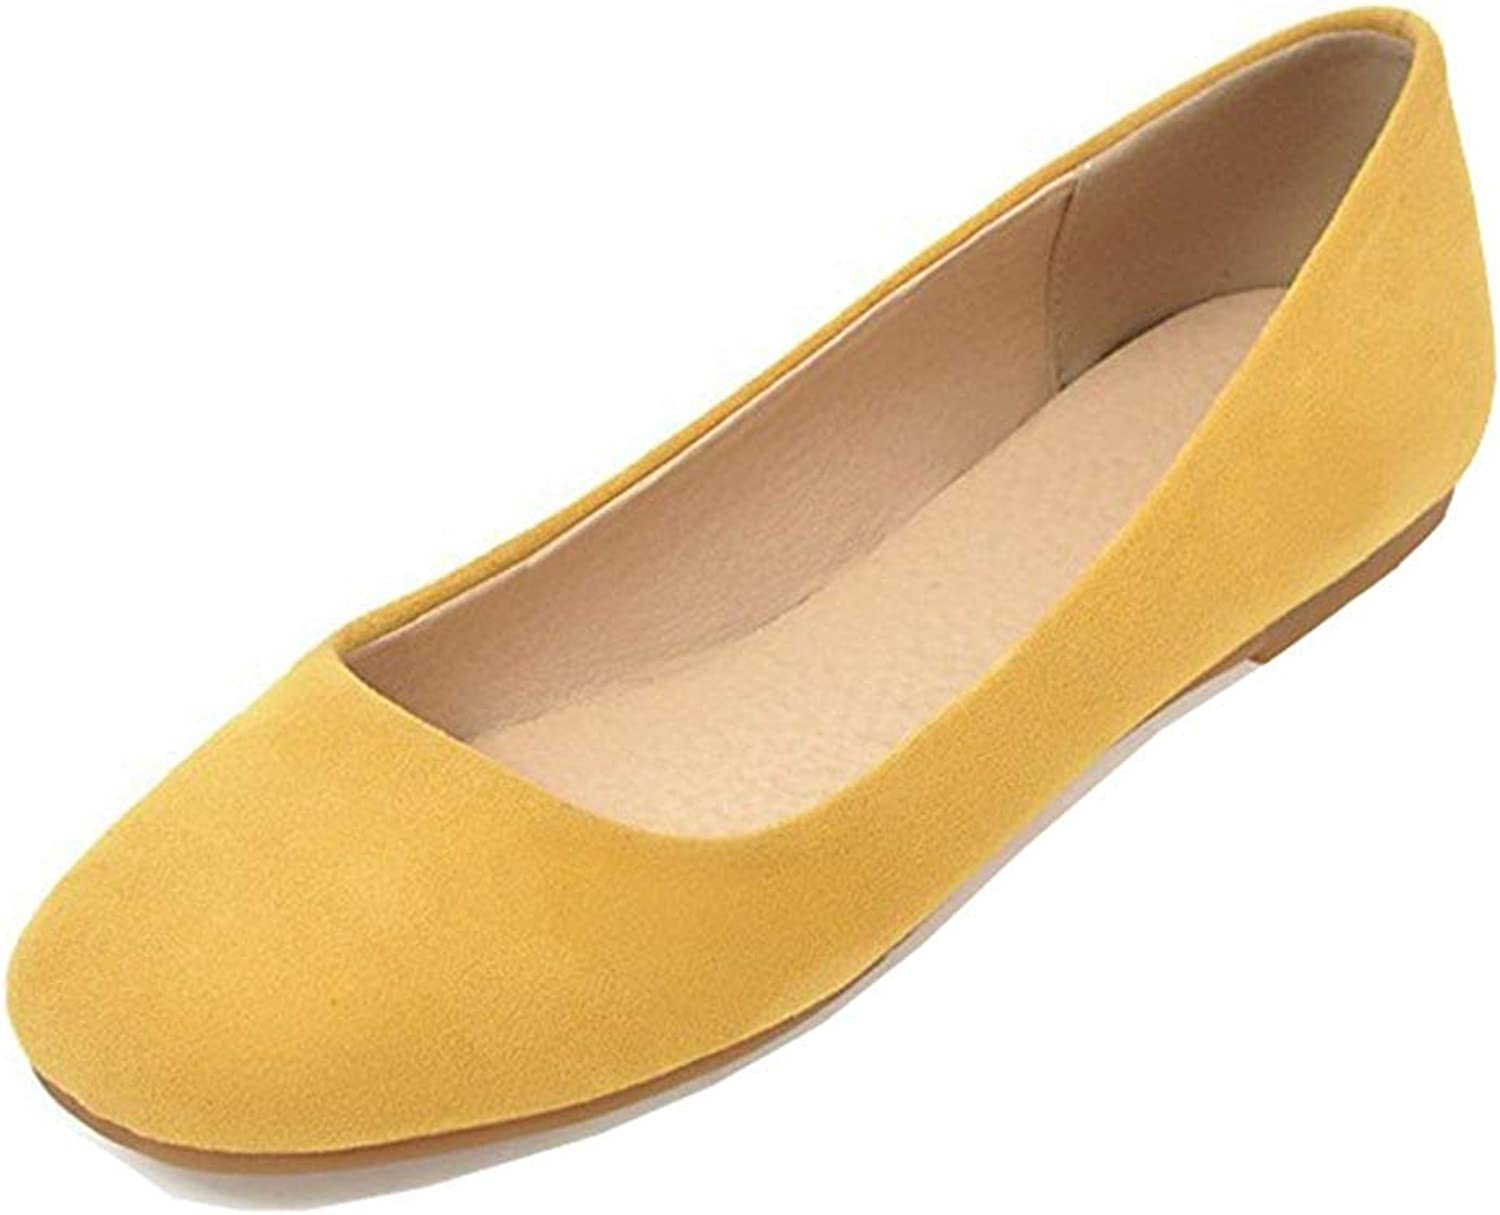 Unm Women's Simple Comfy Low Cut Square Toe Driving Cars Slip On Ballet Flats shoes